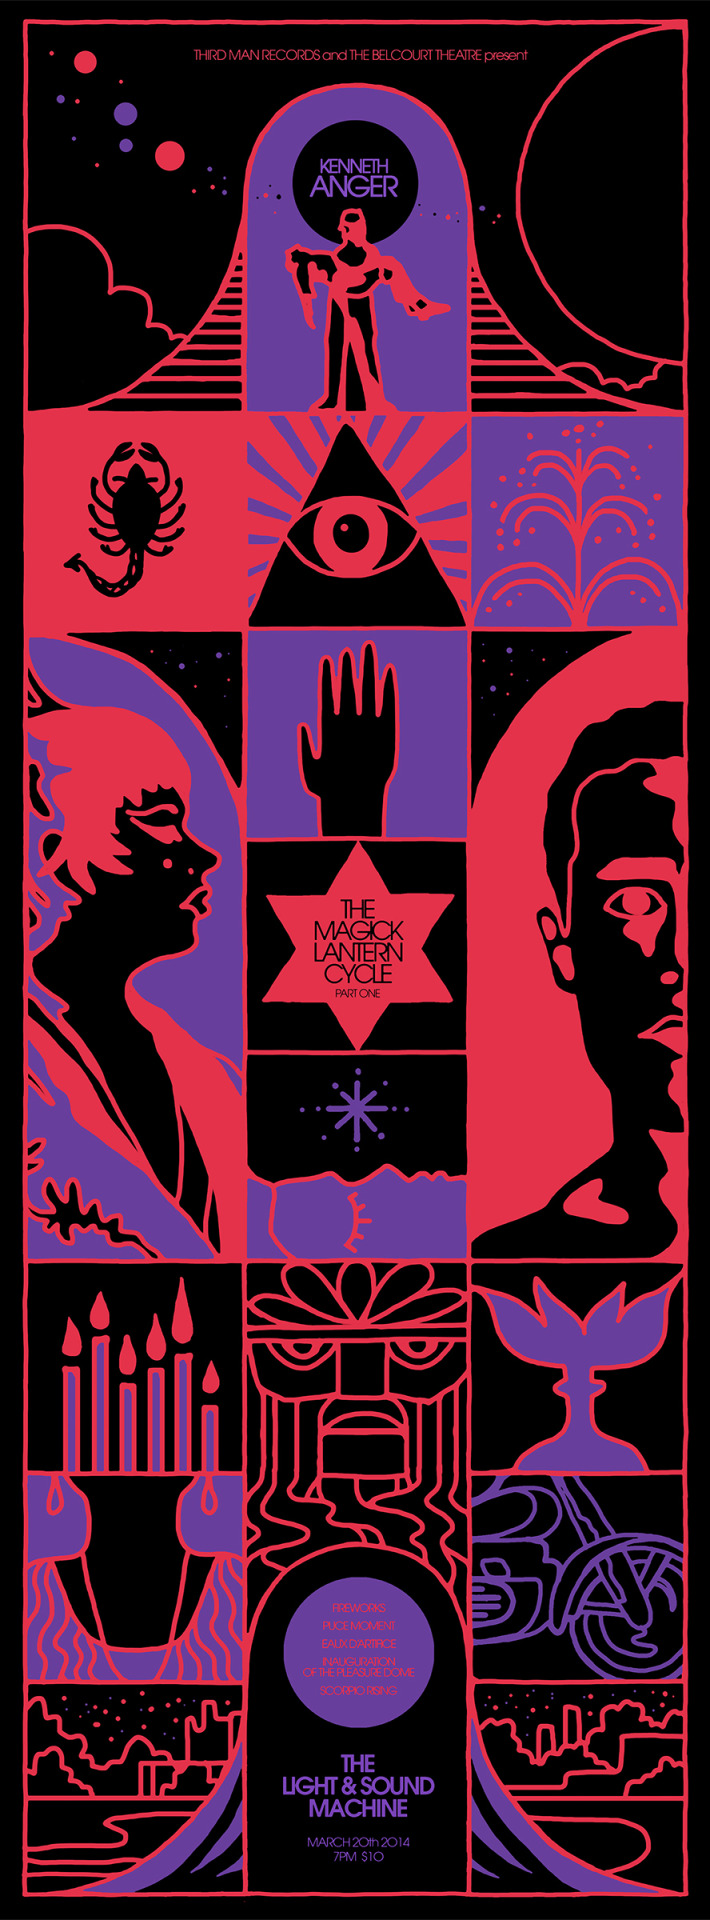 TONIGHT!THE MAGICK LANTERN CYCLE: PART 1 Kenneth Anger, USA, 1947-1964, 100min, 16mm Thursday, March 20th, 7pm. PURCHASE TICKETS HERE. Kenneth Anger: filmmaker, author, queer art pioneer, Crowleyan occultist, disputed child star - feared and respected in equal measure by swaggering rock icons and the decadent Hollywood elite. It is a name which evokes mystery and grandeur, matched by an unparalleled 75+ year career as one of America's dominant counter-cultural figures. For the months of March and April, we proudly present The Magick Lantern Cycle, the fabled 10-film backbone of Anger's life work. This month's screening features the films Fireworks, Puce Moment, Eaux D'Artifice, Inauguration of the Pleasure Dome, and Scorpio Rising, all presented on 16mm film prints courtesy of Canyon Cinema.